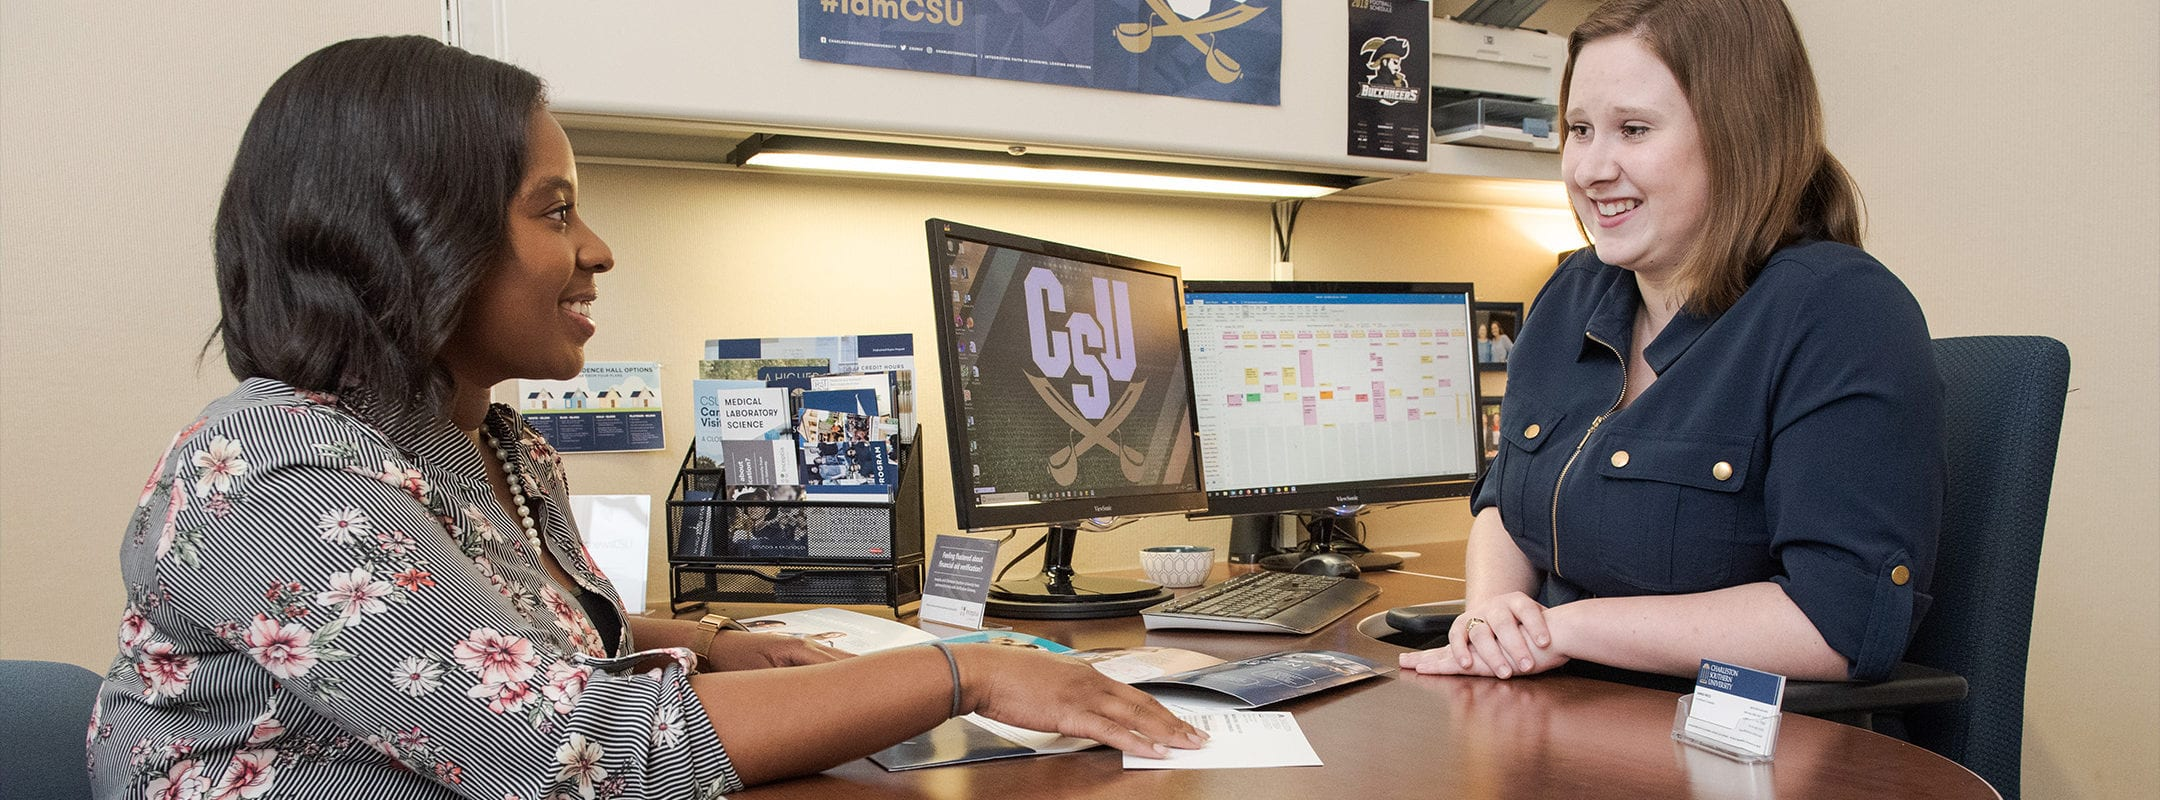 A CSU admissions counselor sitting with a student going over admissions materials.